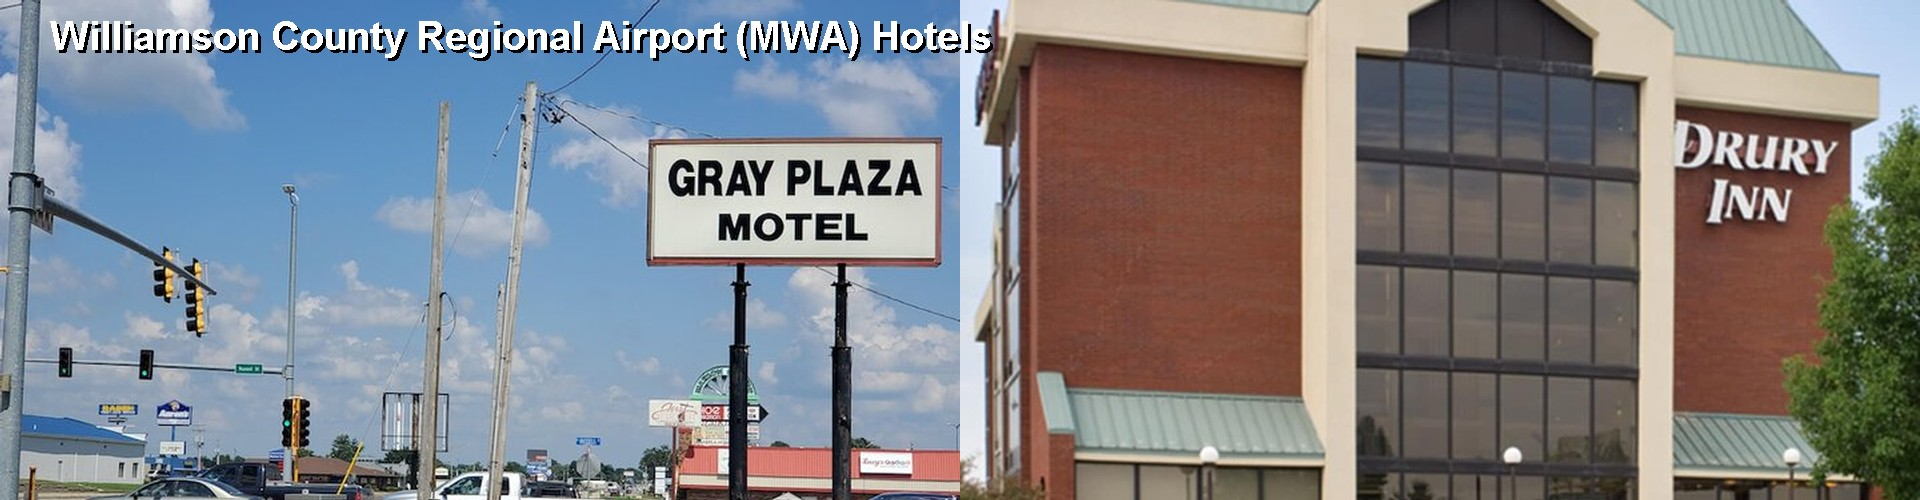 5 Best Hotels near Williamson County Regional Airport (MWA)